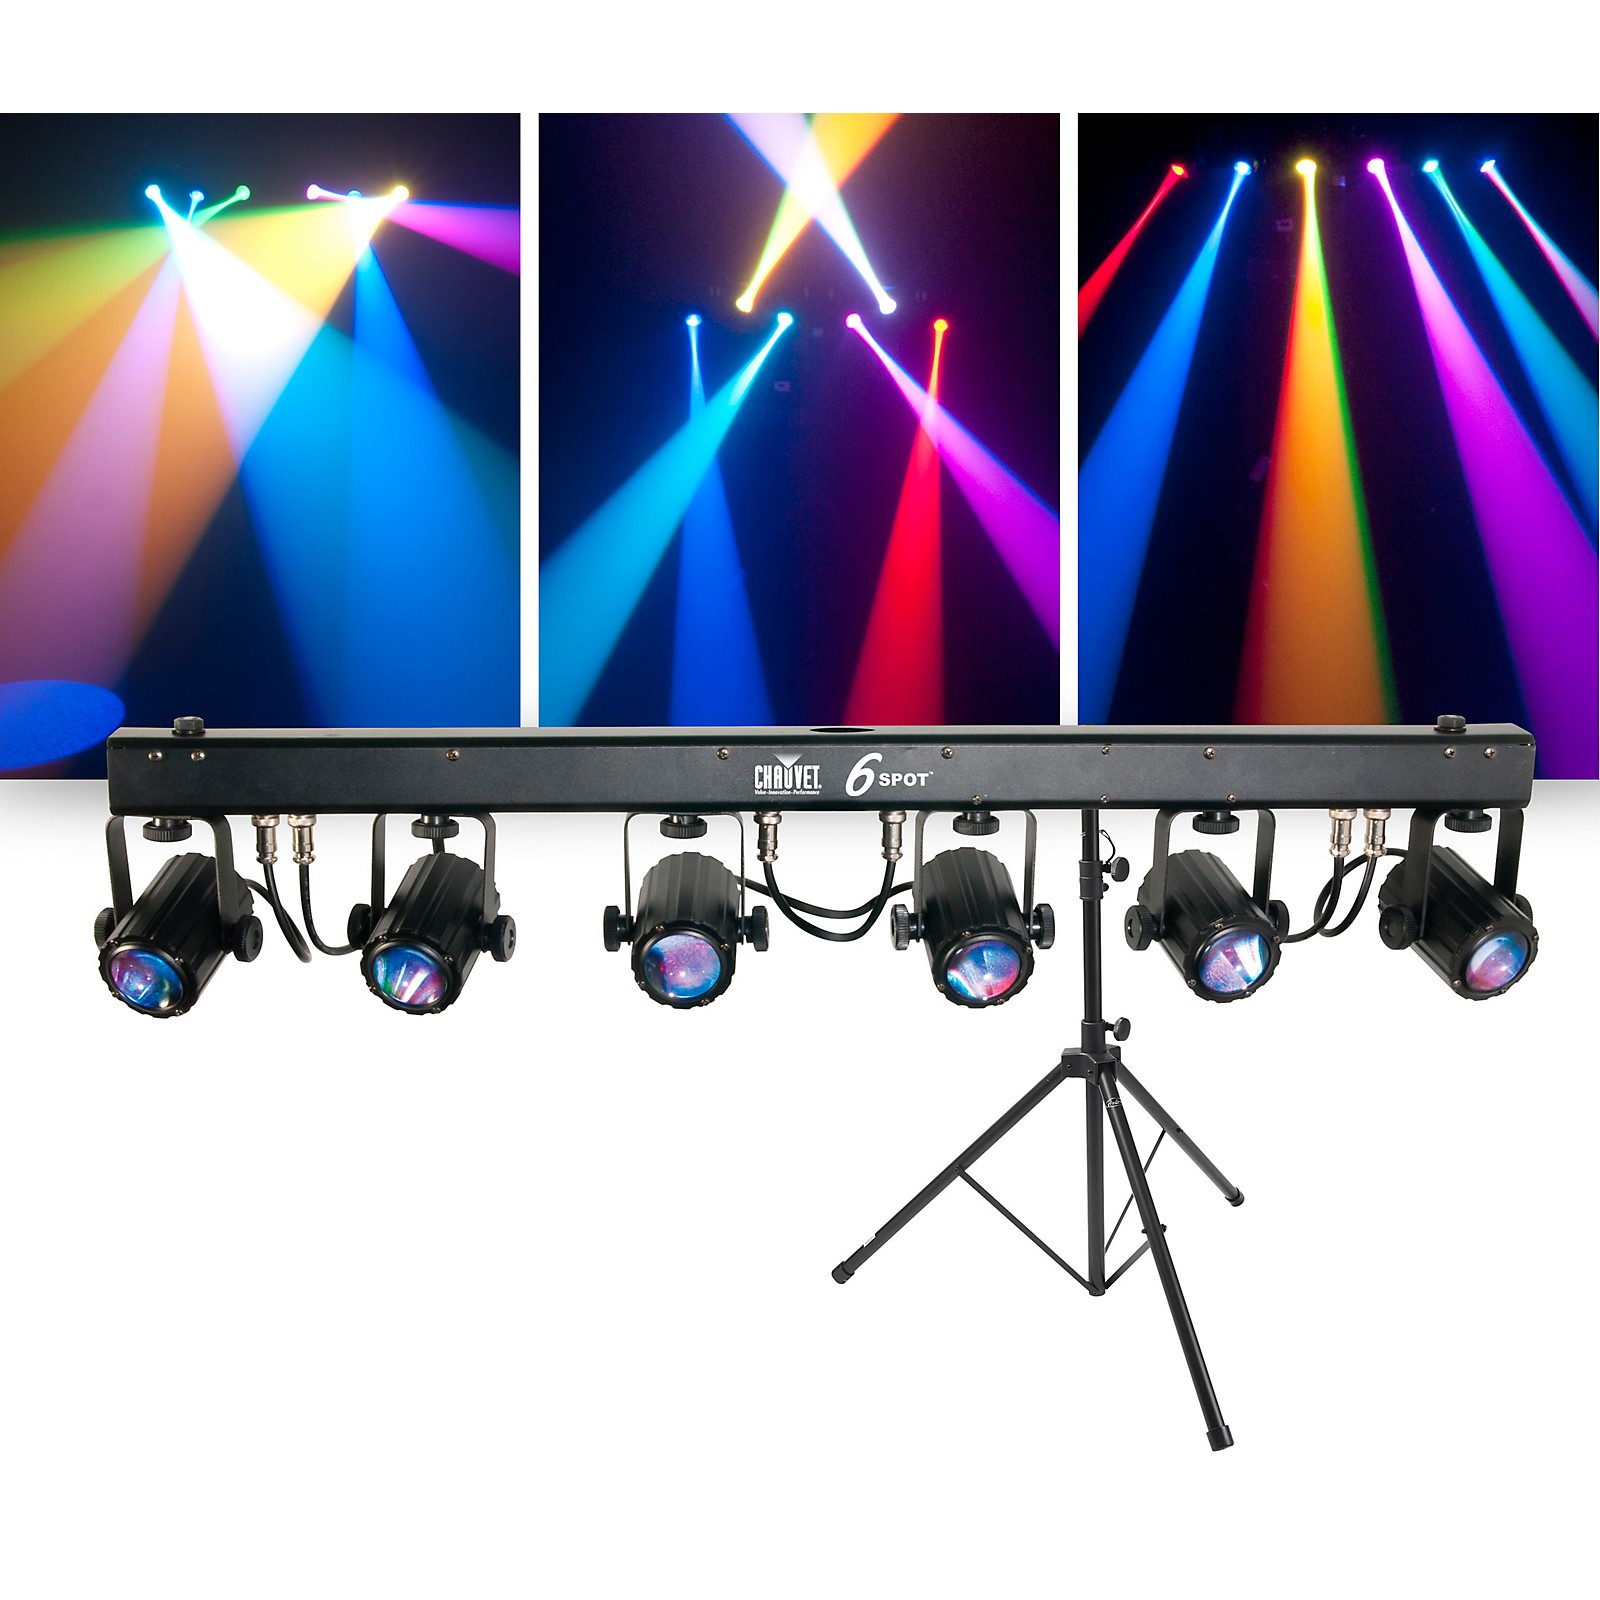 CHAUVET DJ Package with 6SPOT RGB LED Beam Lighting System and Stand